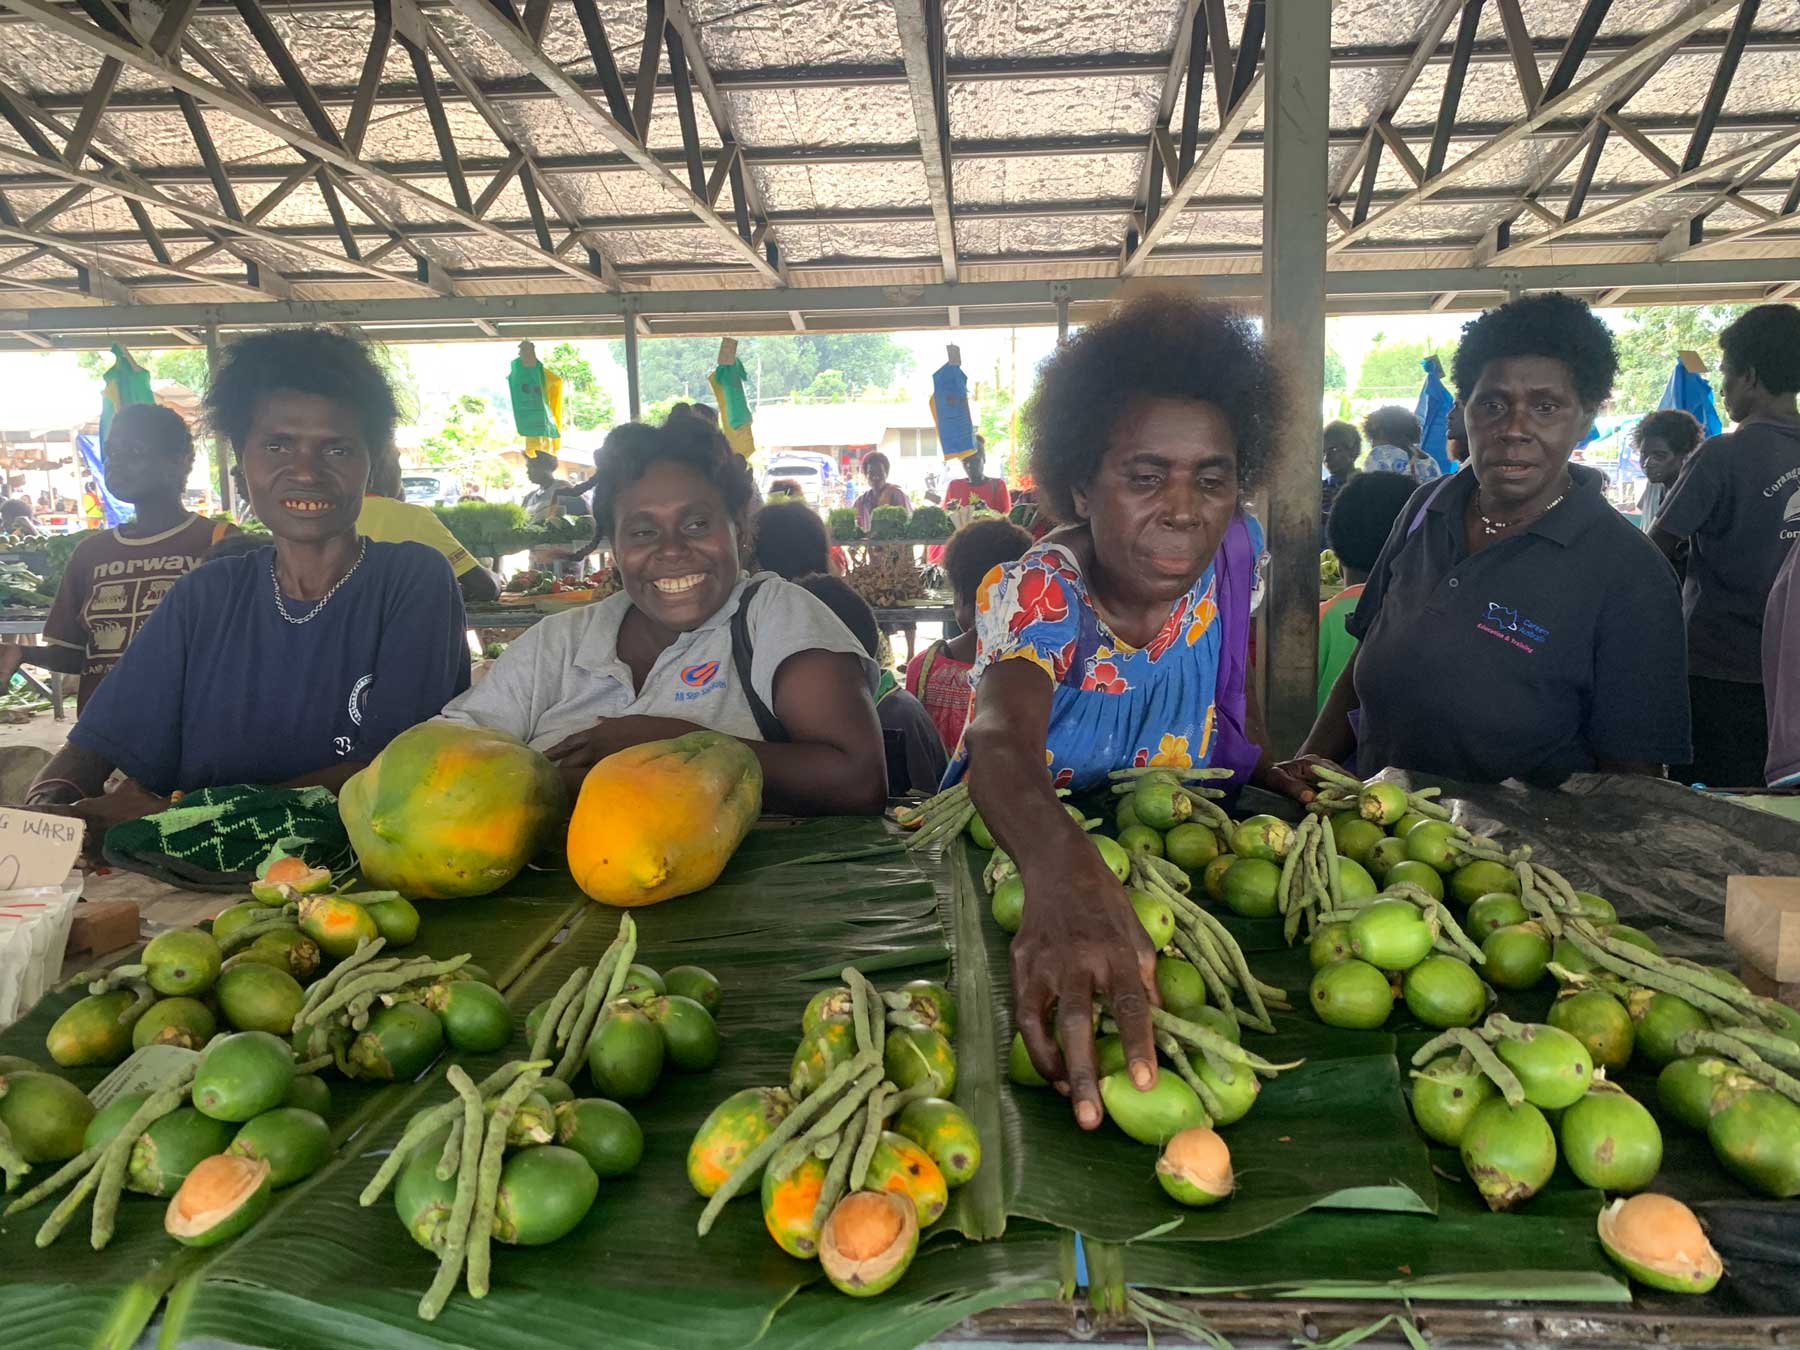 Bougainville is largely 'referendum ready' and its people are expected to vote overwhelmingly for independence in the November referendum (Photo: Ben Bohane/Wakaphotos.com)